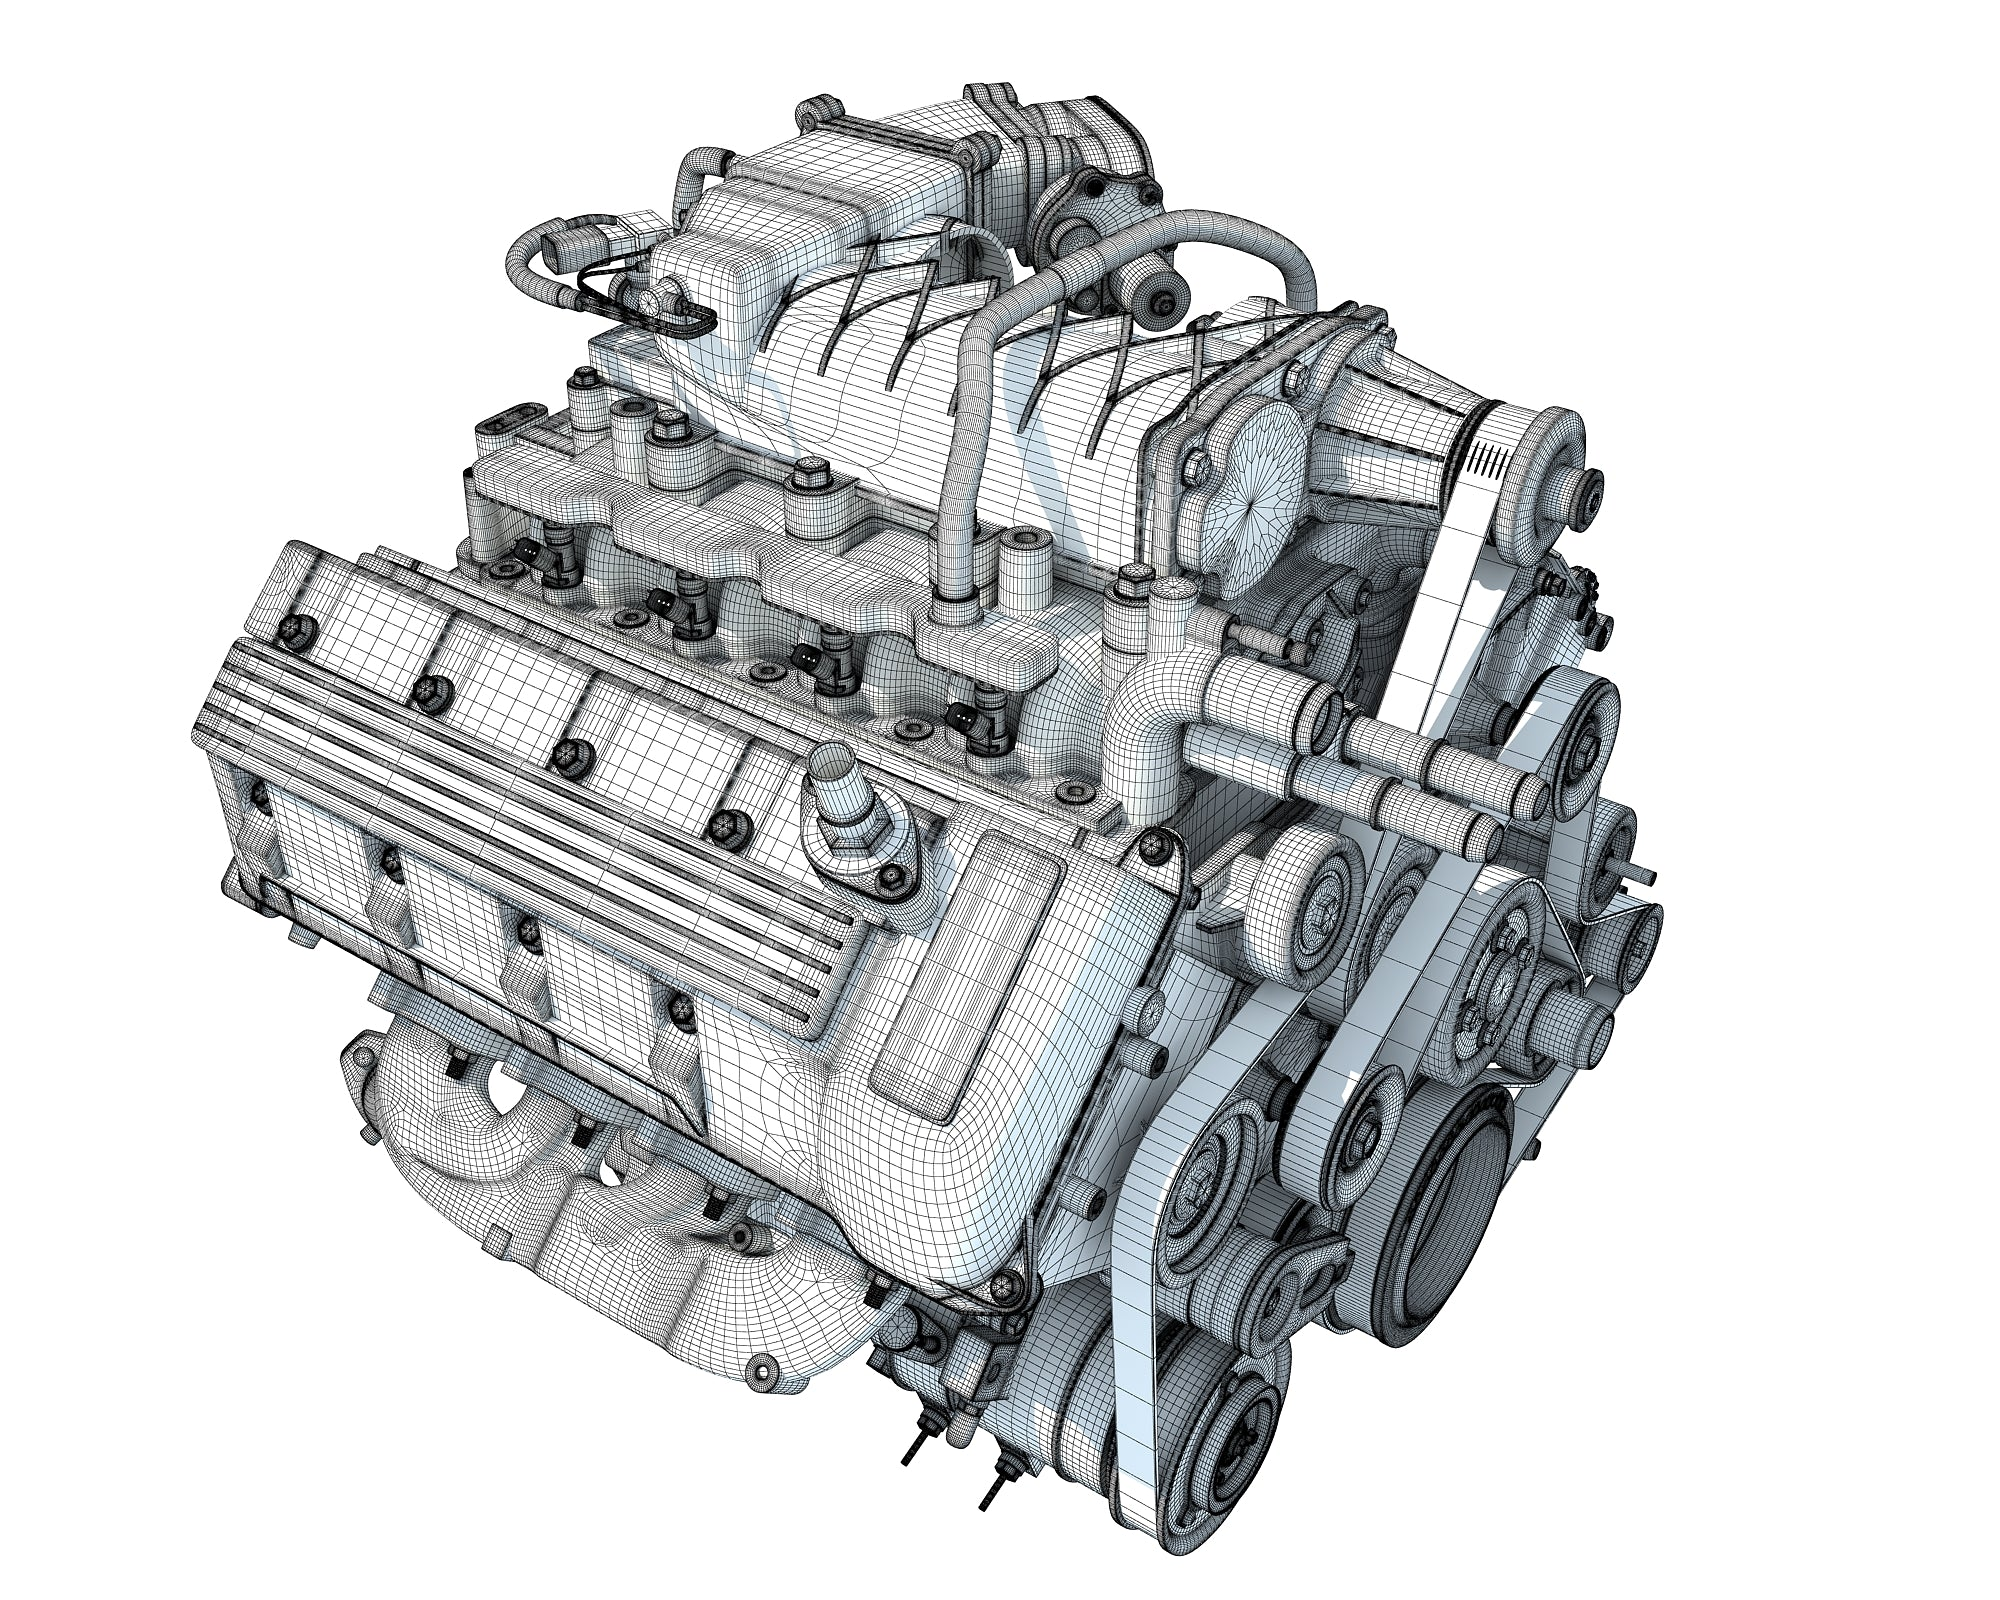 V8 Engine Cutaway Animation